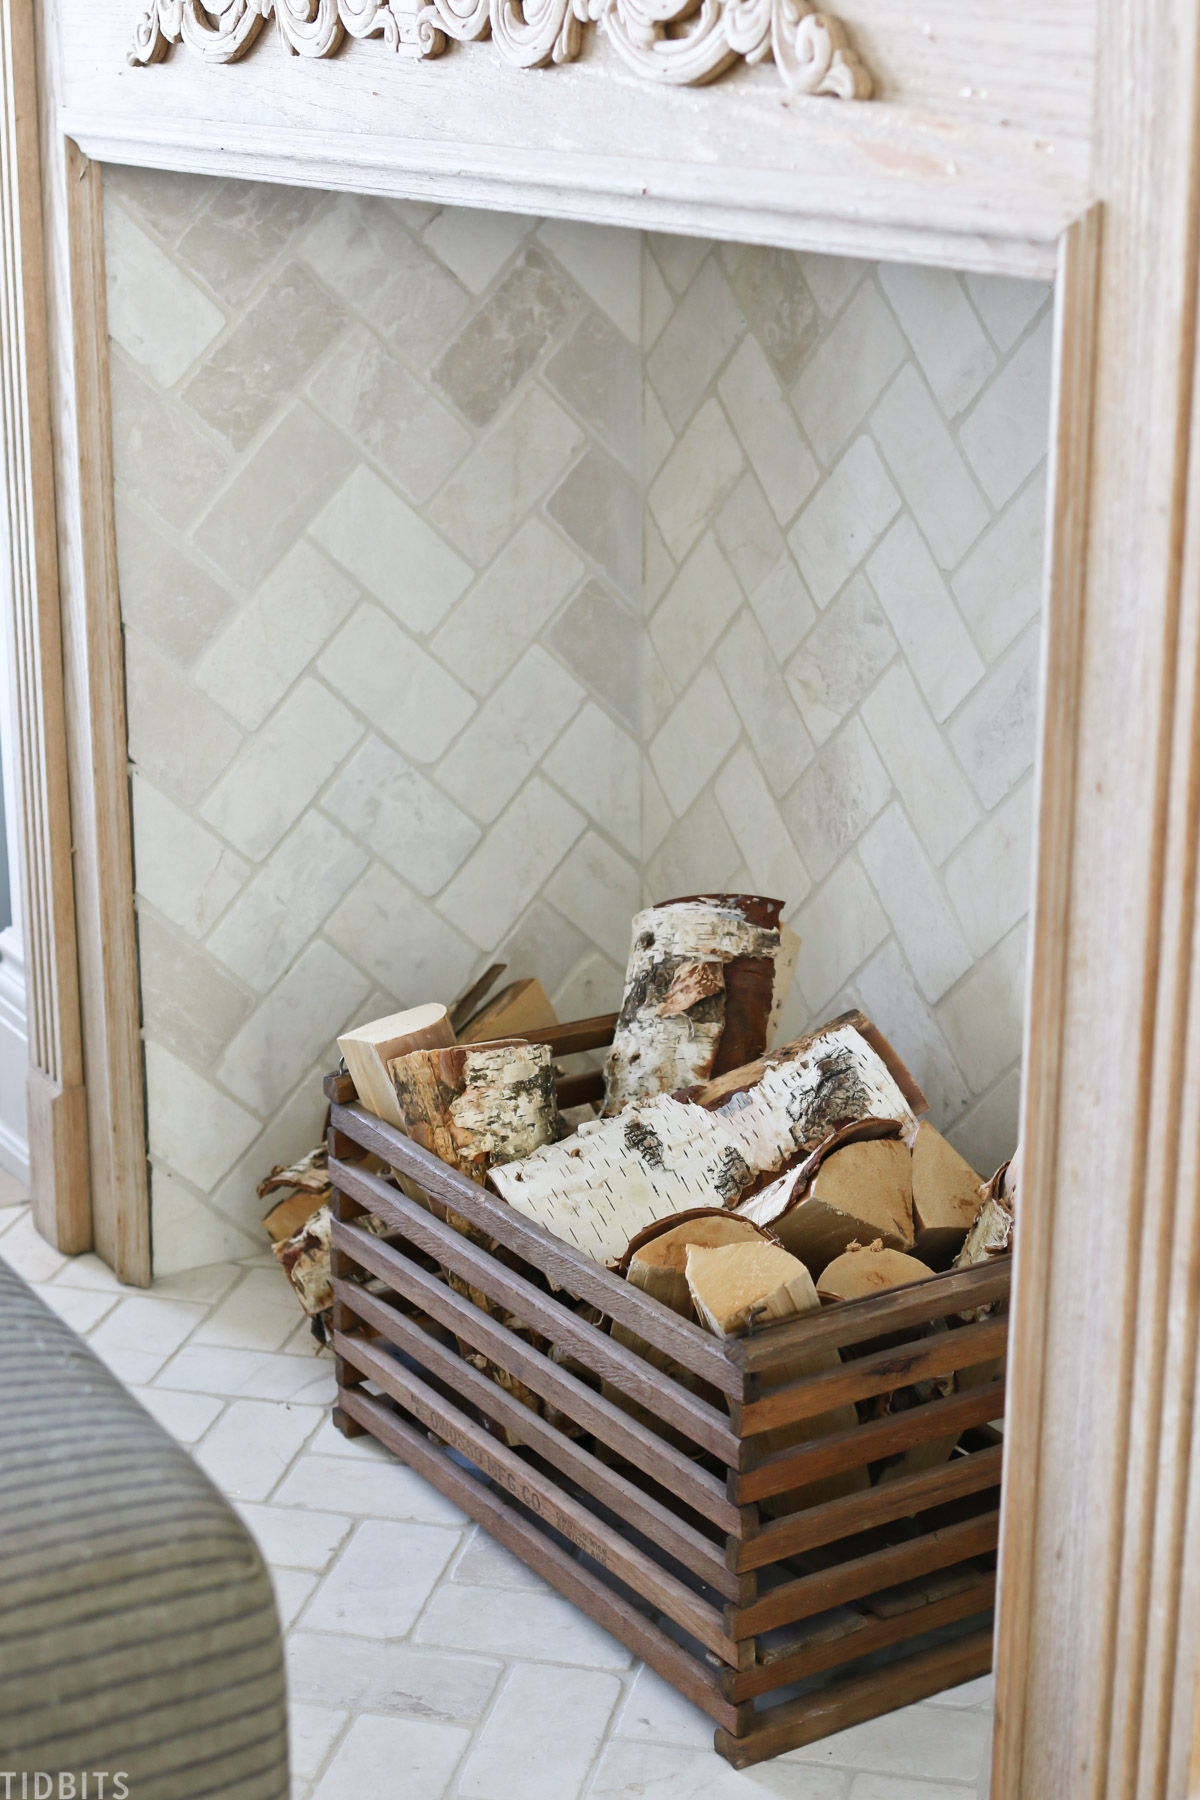 pieces of firewood placed in wooden basket in front of fireplace